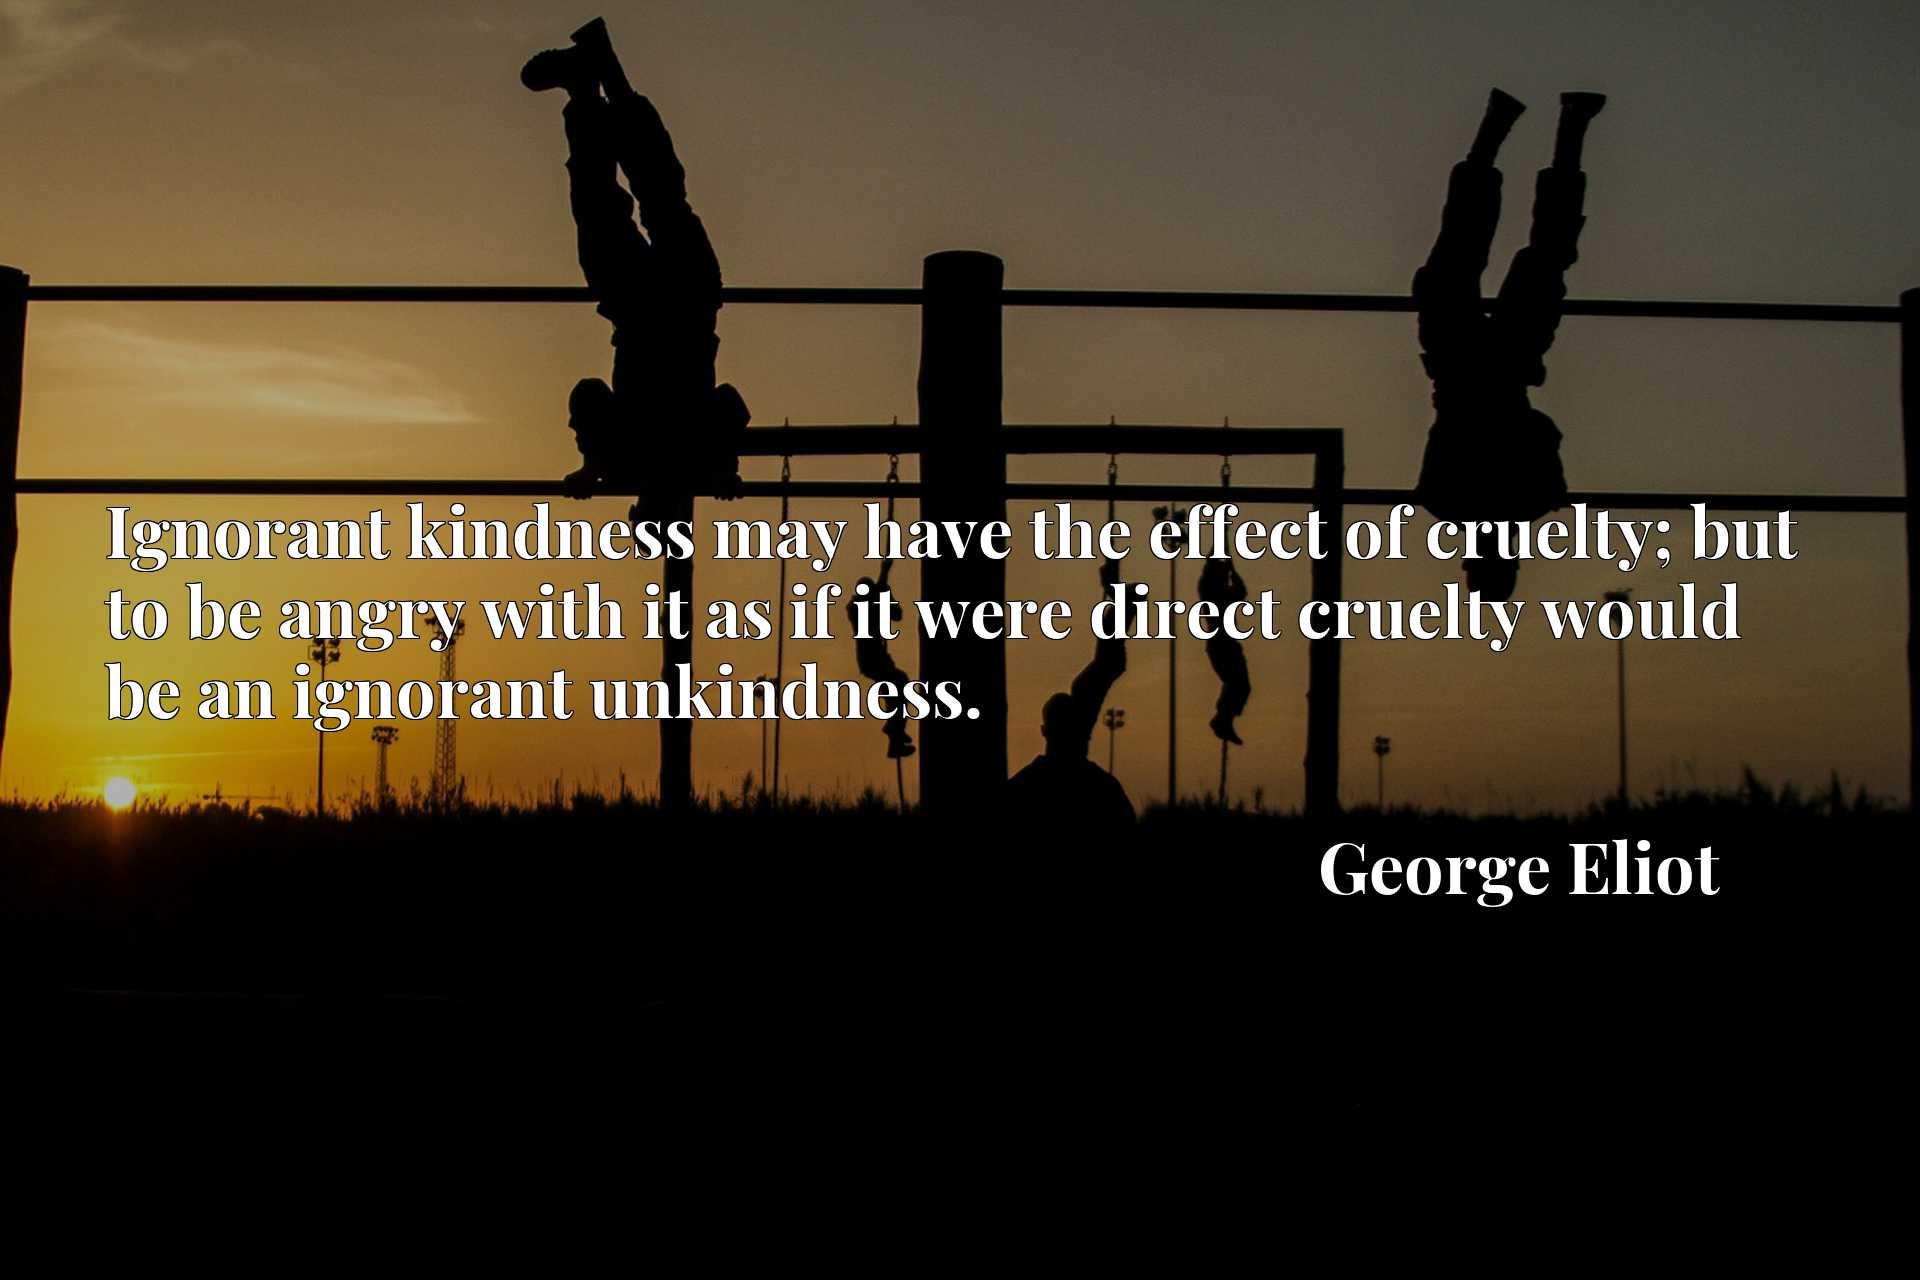 Ignorant kindness may have the effect of cruelty; but to be angry with it as if it were direct cruelty would be an ignorant unkindness.